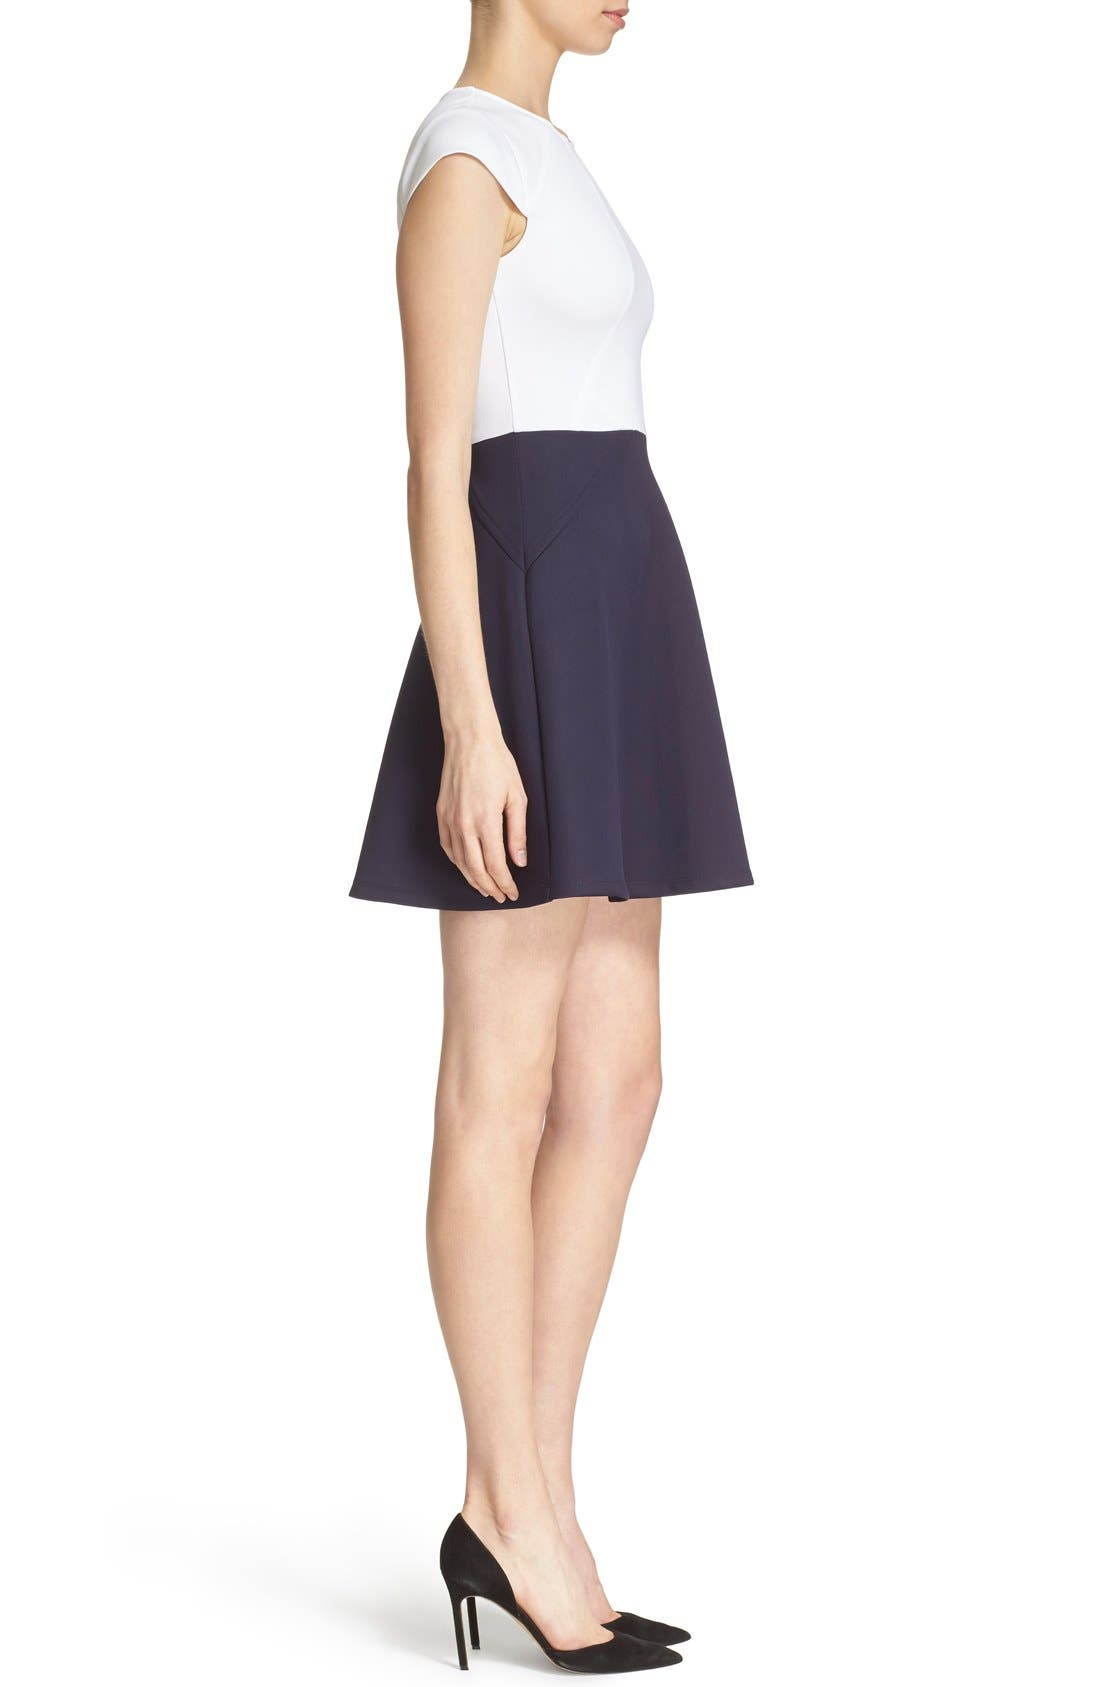 TED BAKER LONDON, 'AABRR' Colorblock Cap Sleeve Skater Dress, Alternate thumbnail 4, color, 402